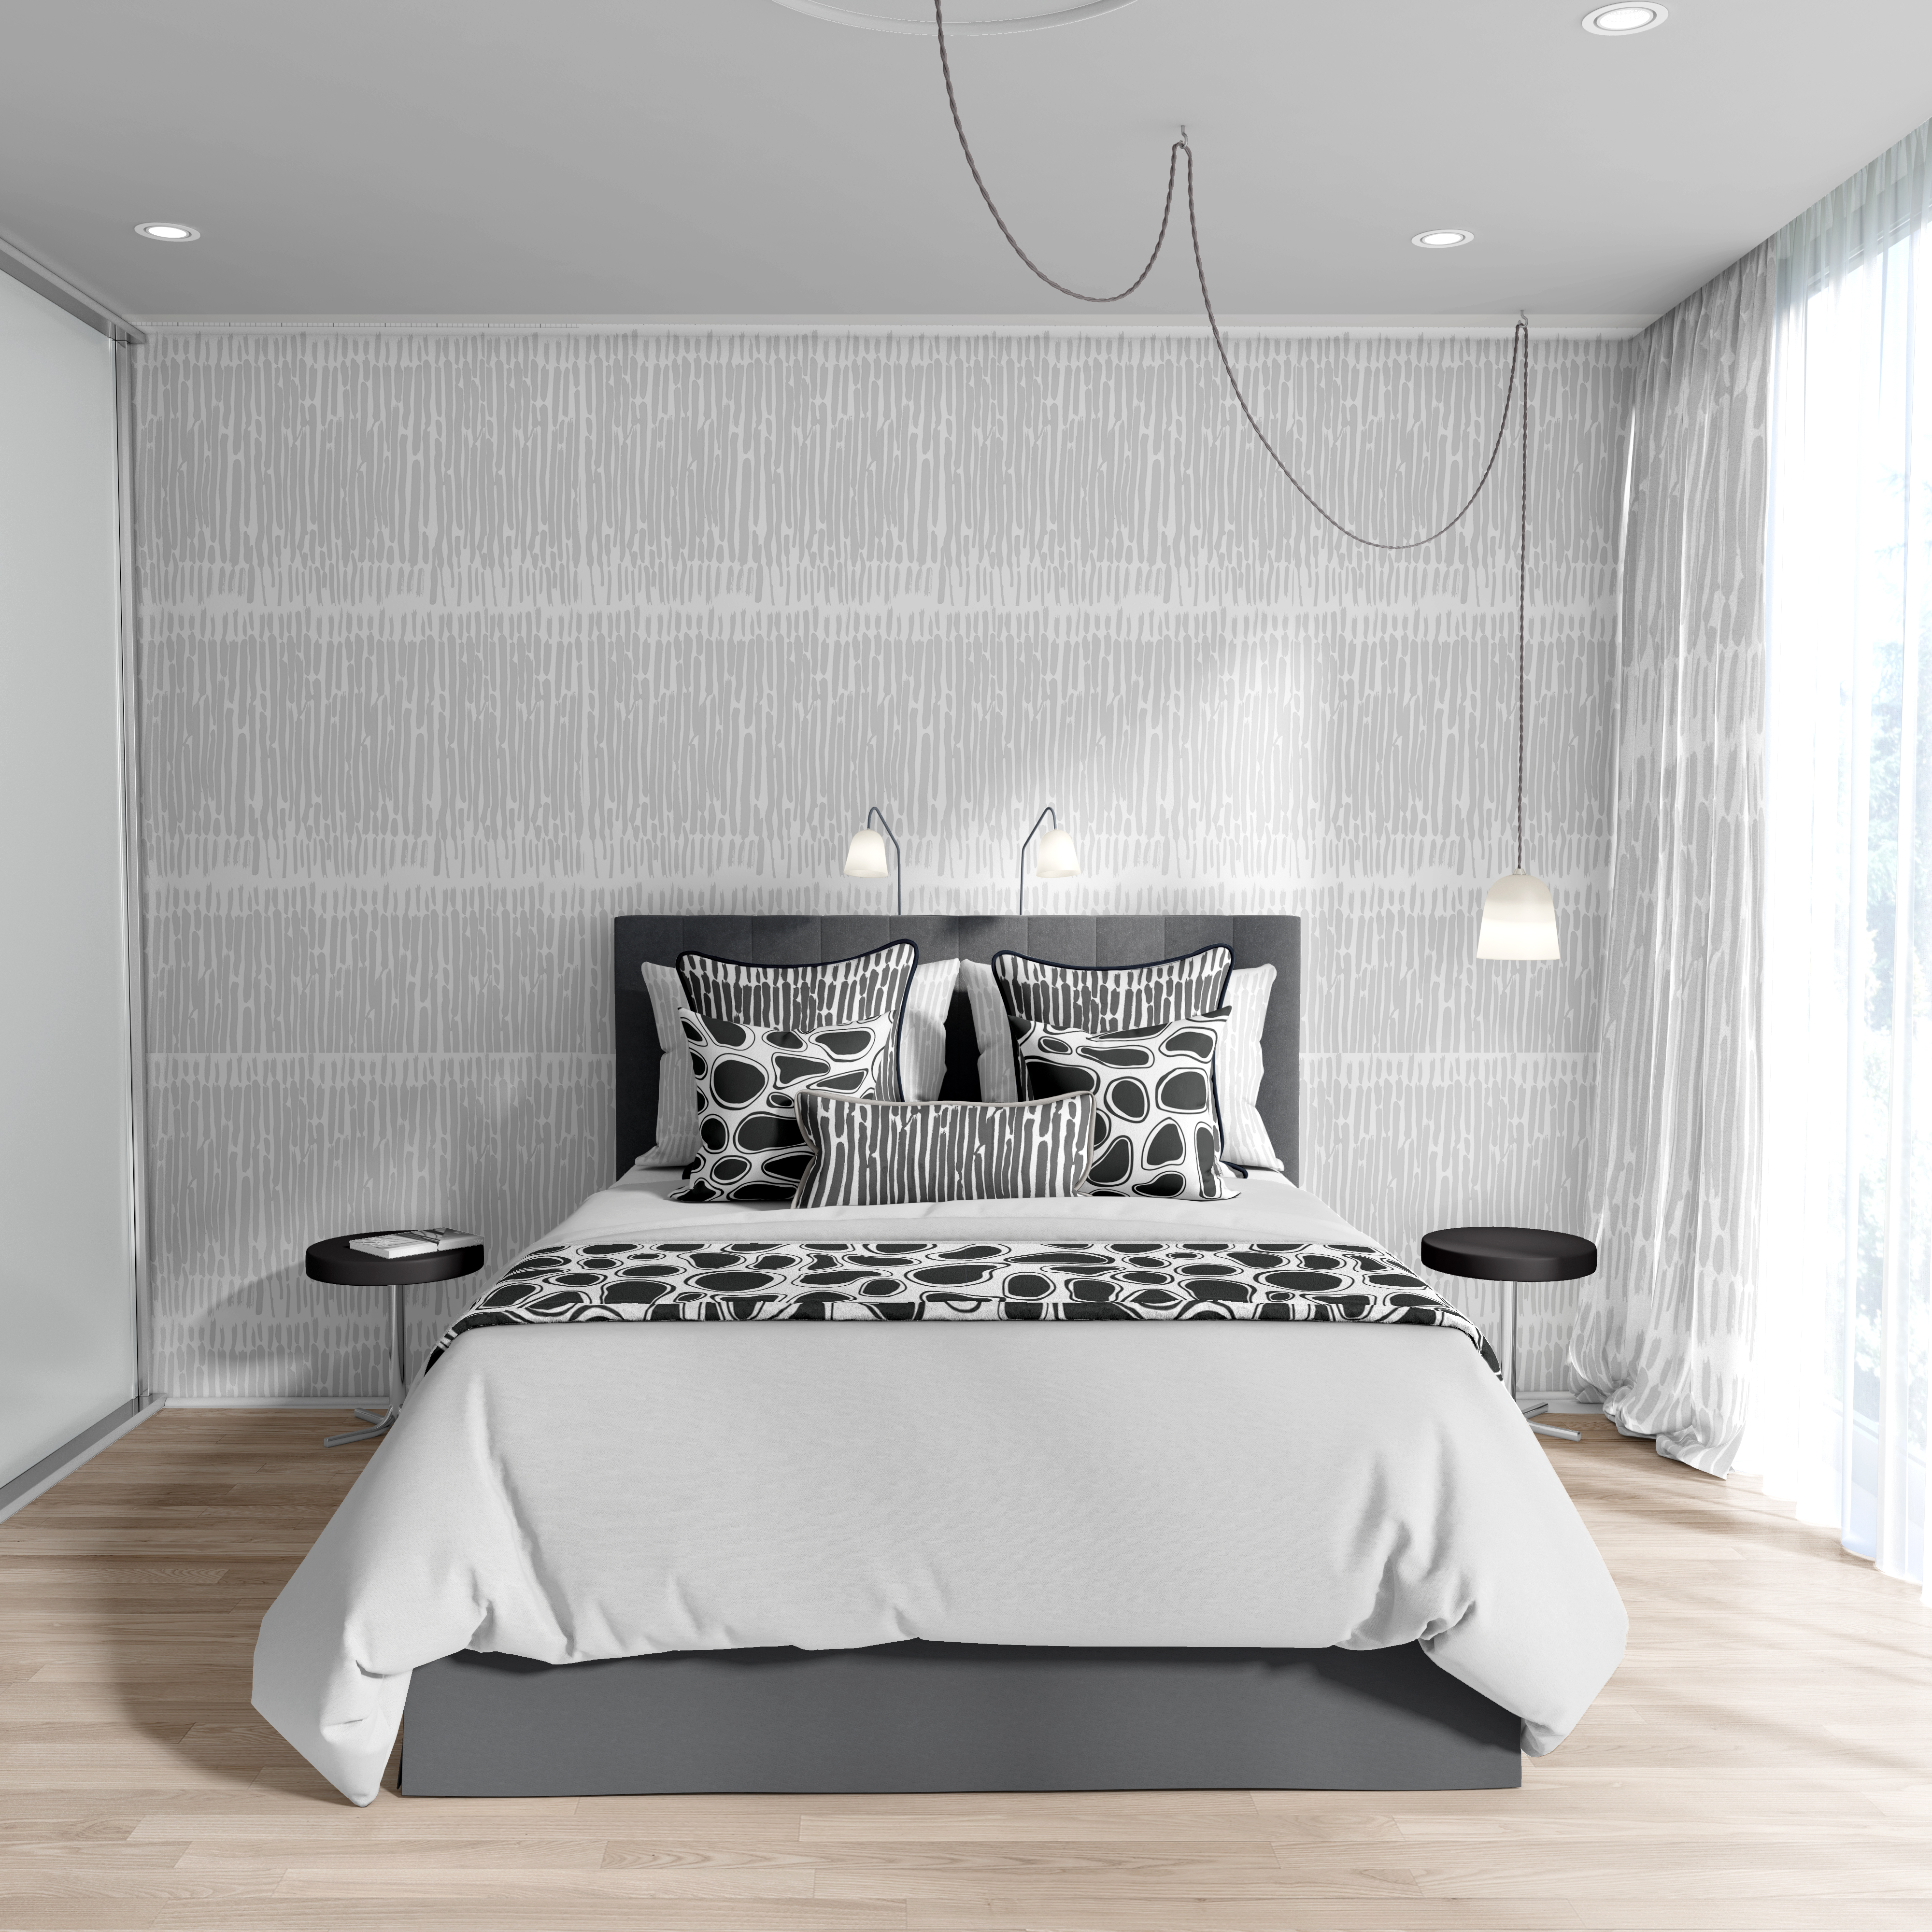 Bedding Scene White Night With Wallpaper